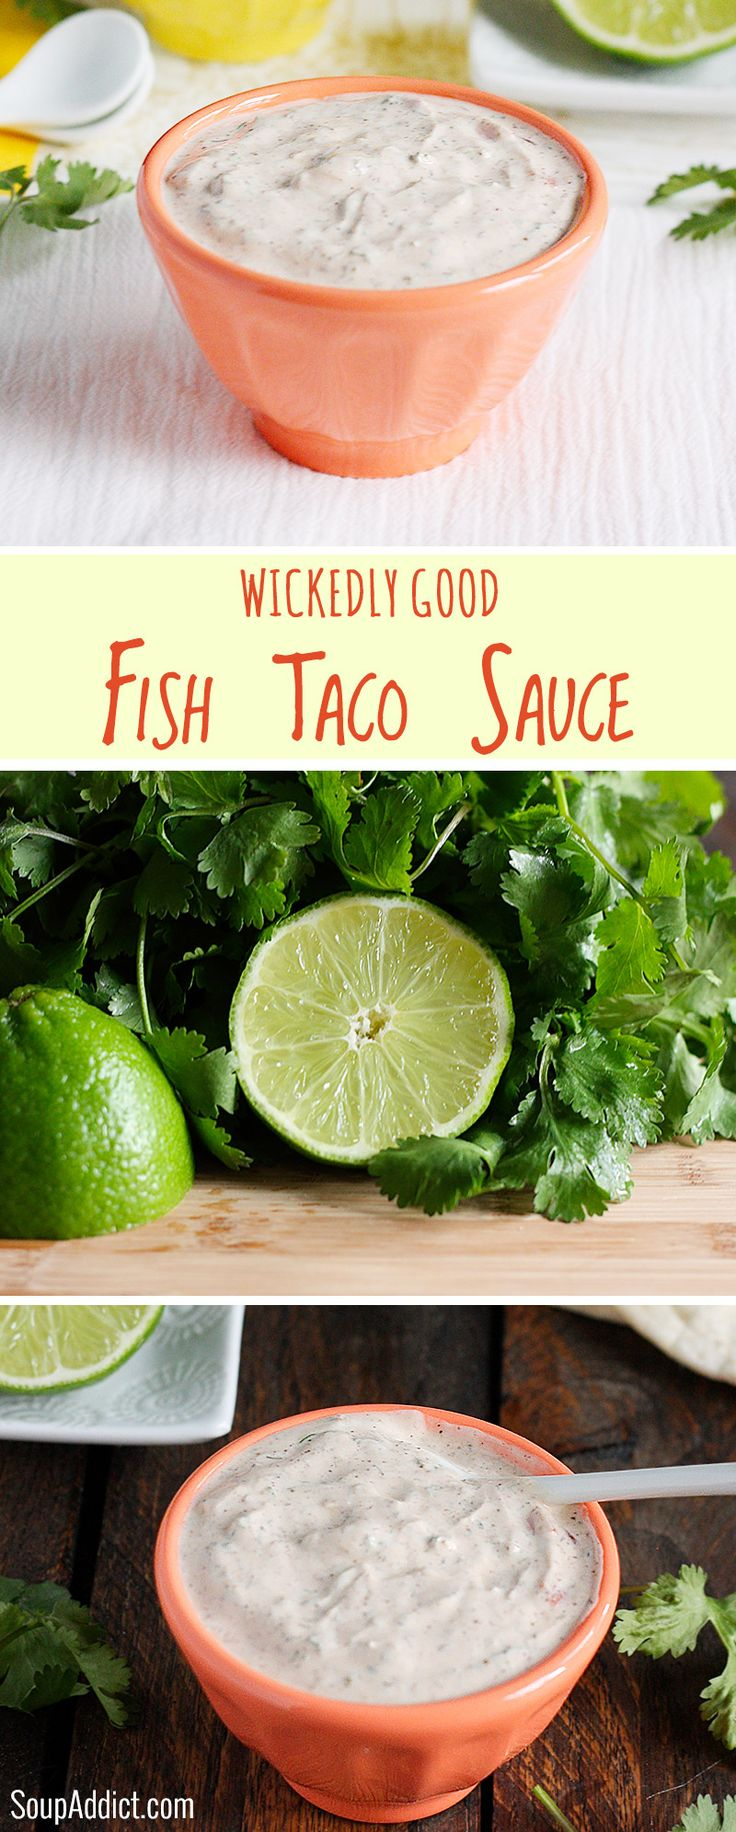 Wickedly Good Fish Taco Sauce from SoupAddict.com - the best white sauce for your delicious fish tacos!